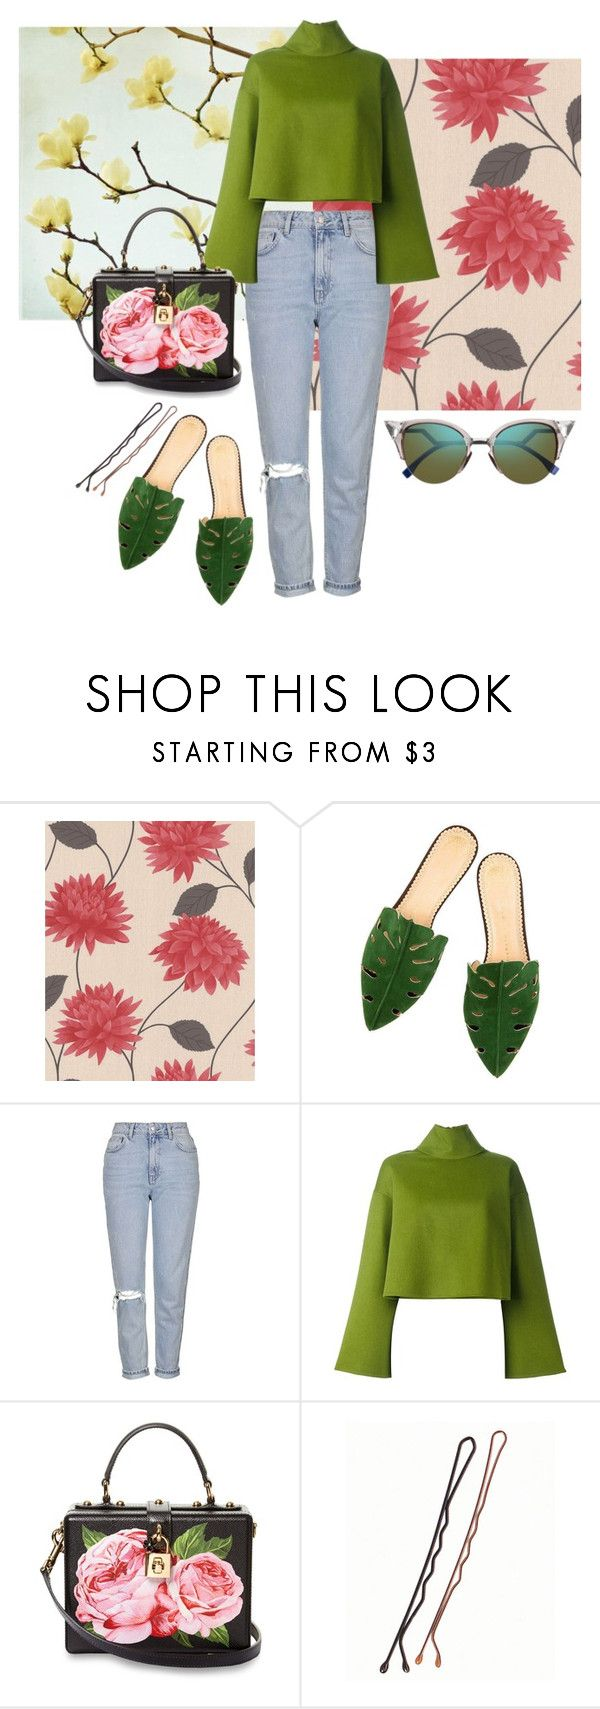 """""""spring time swing"""" by nover on Polyvore featuring Graham & Brown, Topshop, Bally, Dolce&Gabbana and Fendi"""